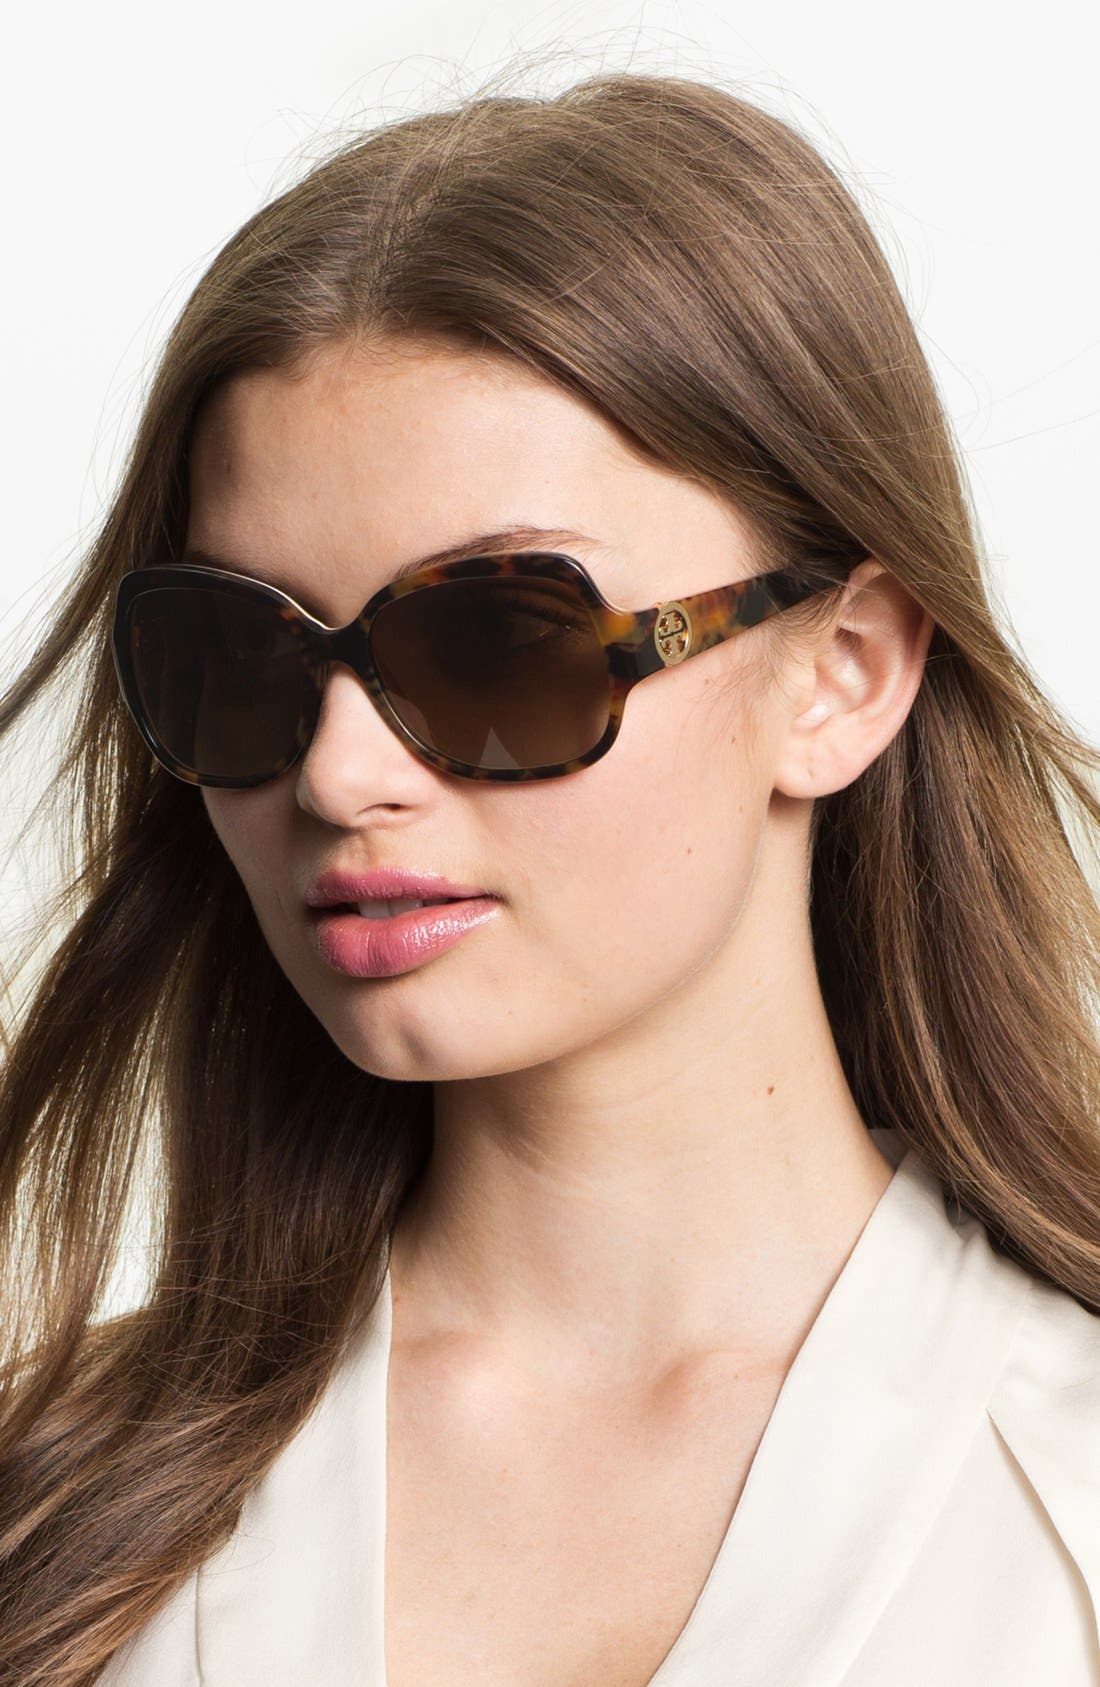 Alternate Image 1 Selected - Tory Burch 'Glam Logo Hinge' 57mm Polarized Sunglasses